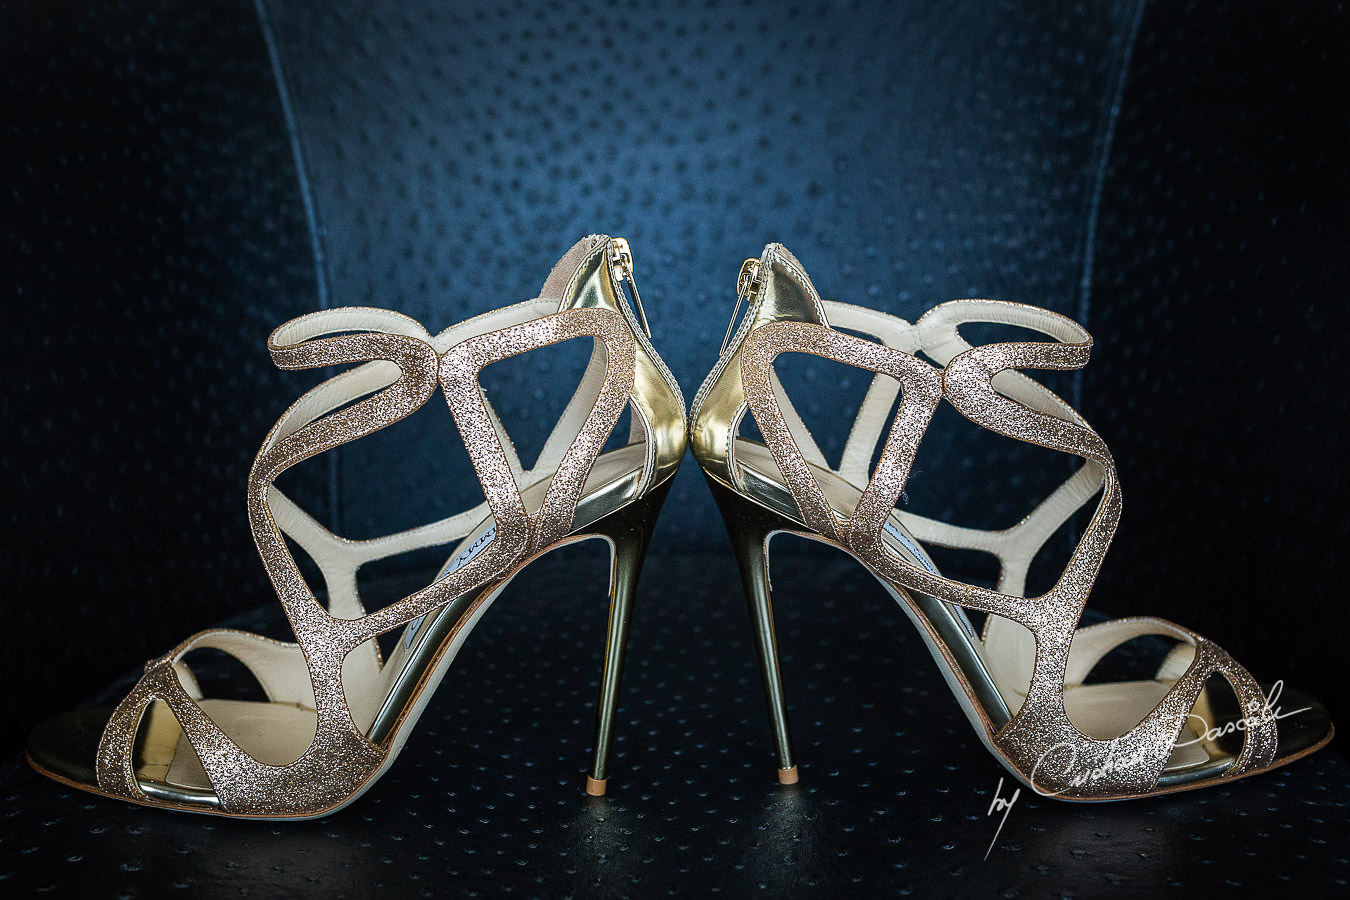 Jimmy Choo bridal shoes details, captured at a wedding in Cyprus by Photographer Cristian Dascalu.